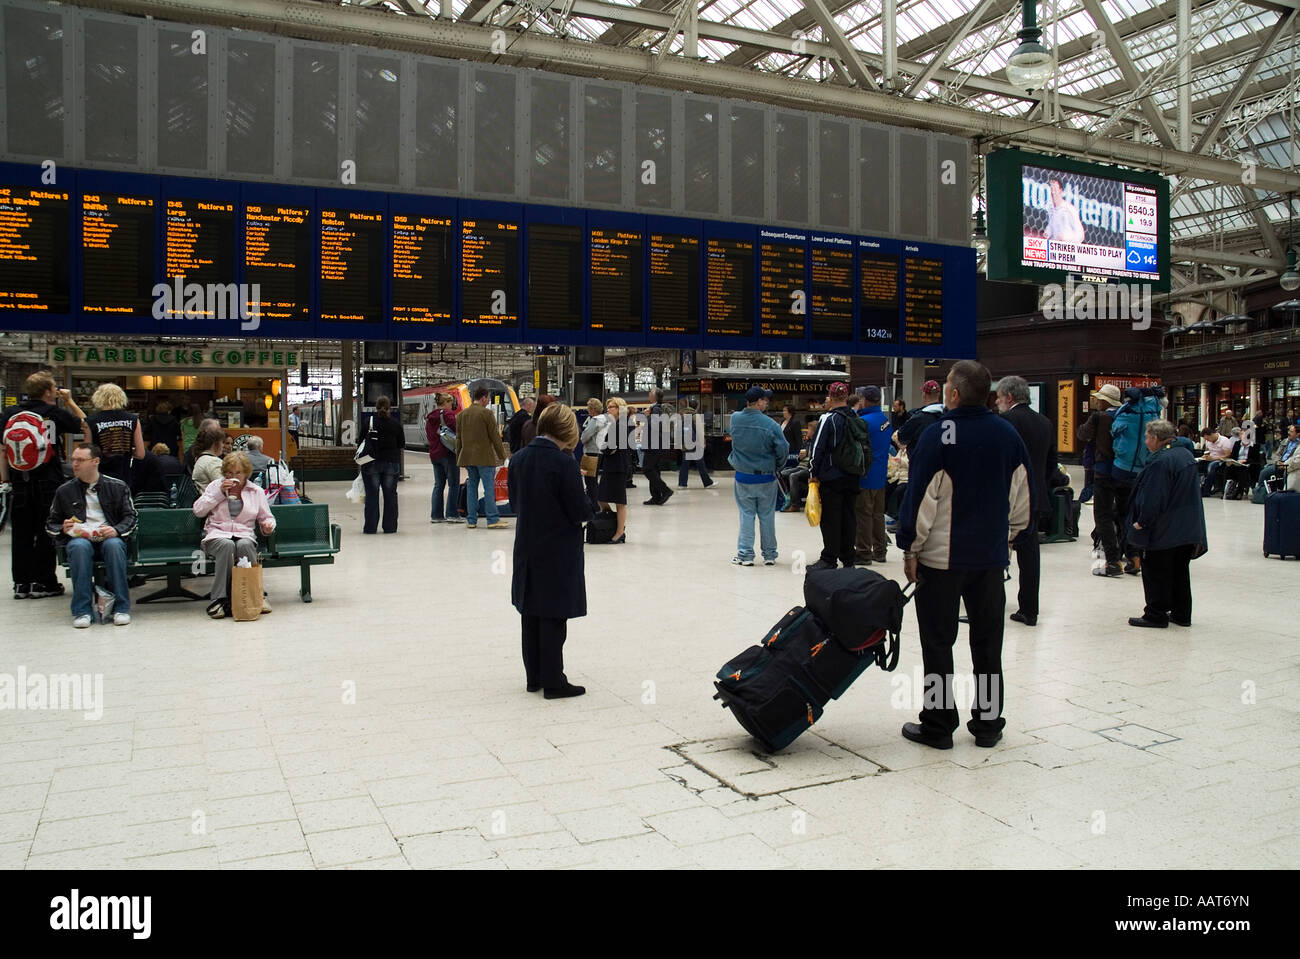 dh  CENTRAL STATION GLASGOW Passengers looking at train timetable board departure scotland railway busy - Stock Image